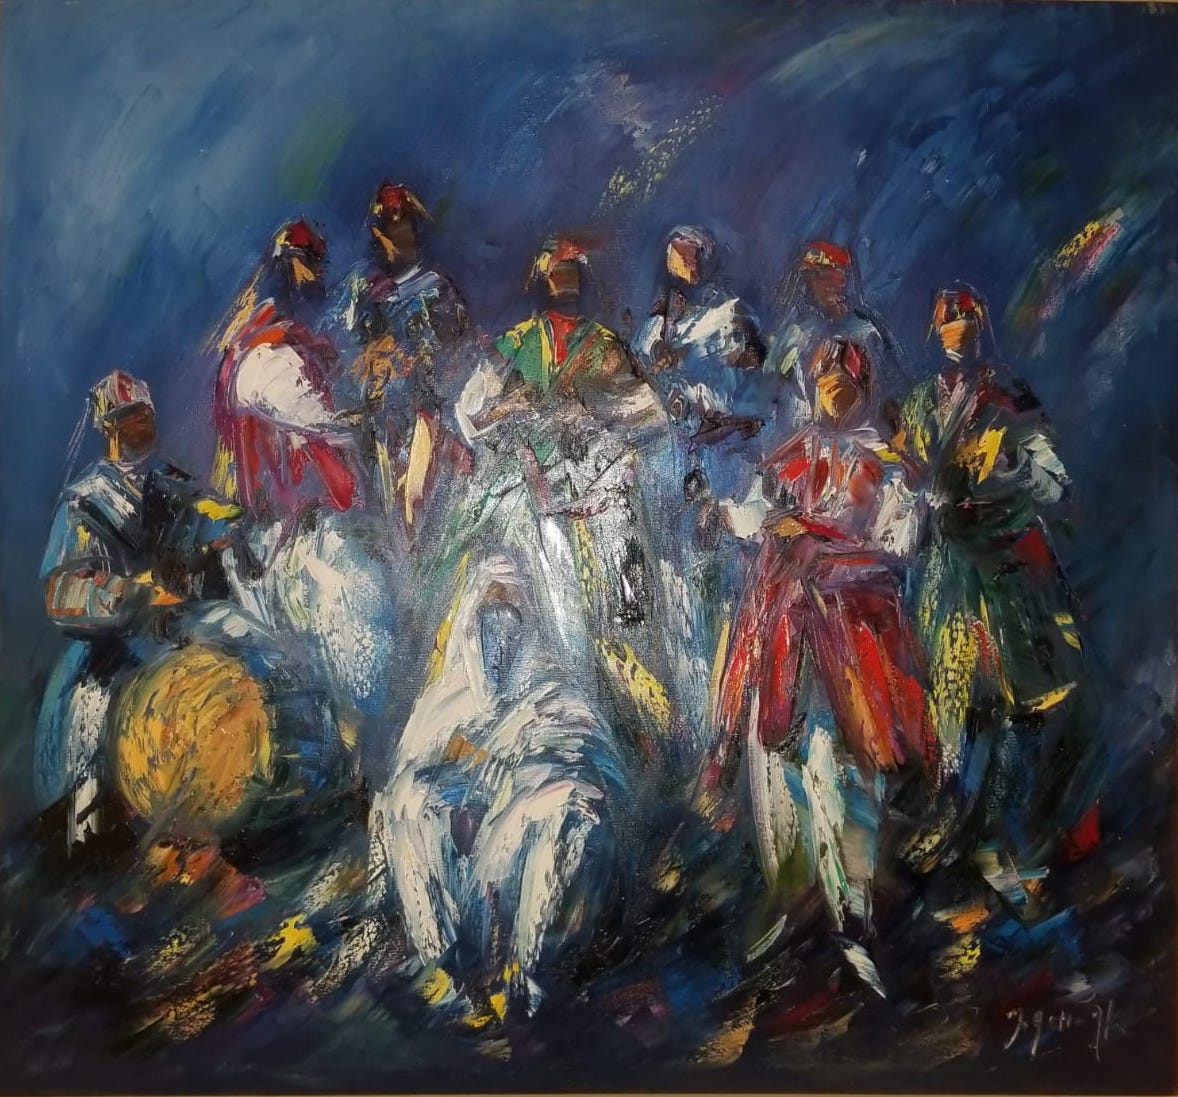 Gnaouas Moroccan Oil Painting artwork by Achwak Mohamed - art listed for sale on Artplode